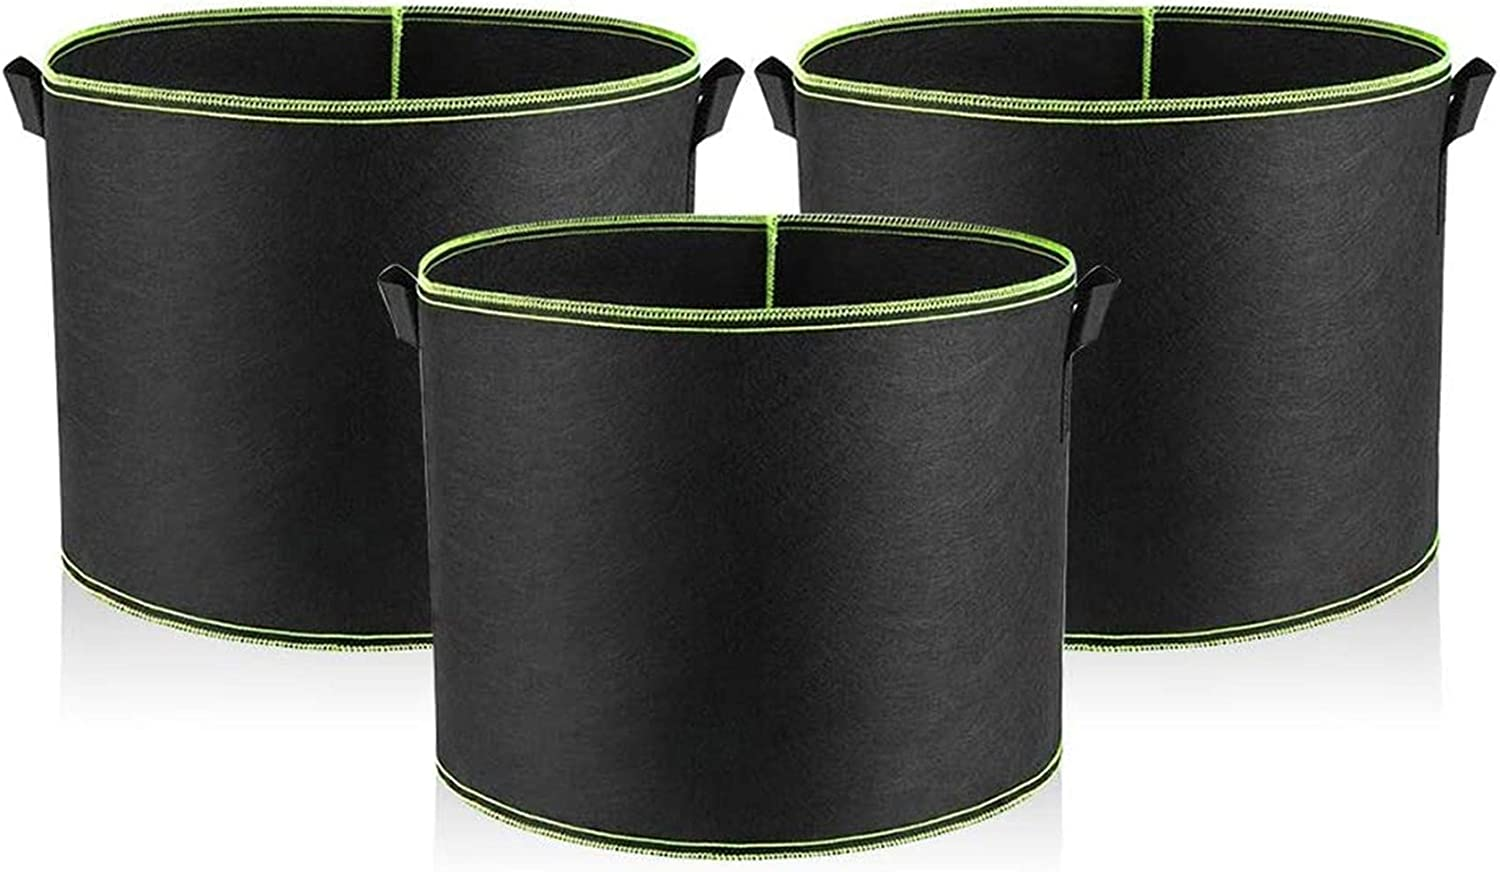 Opfree Vegetable Grow Bags,Garden containers Pots and planters Extra Large,Planting Pots Pack,for Grow Vegetables Indoor Outdoor 25 * 22cm 3 PCS